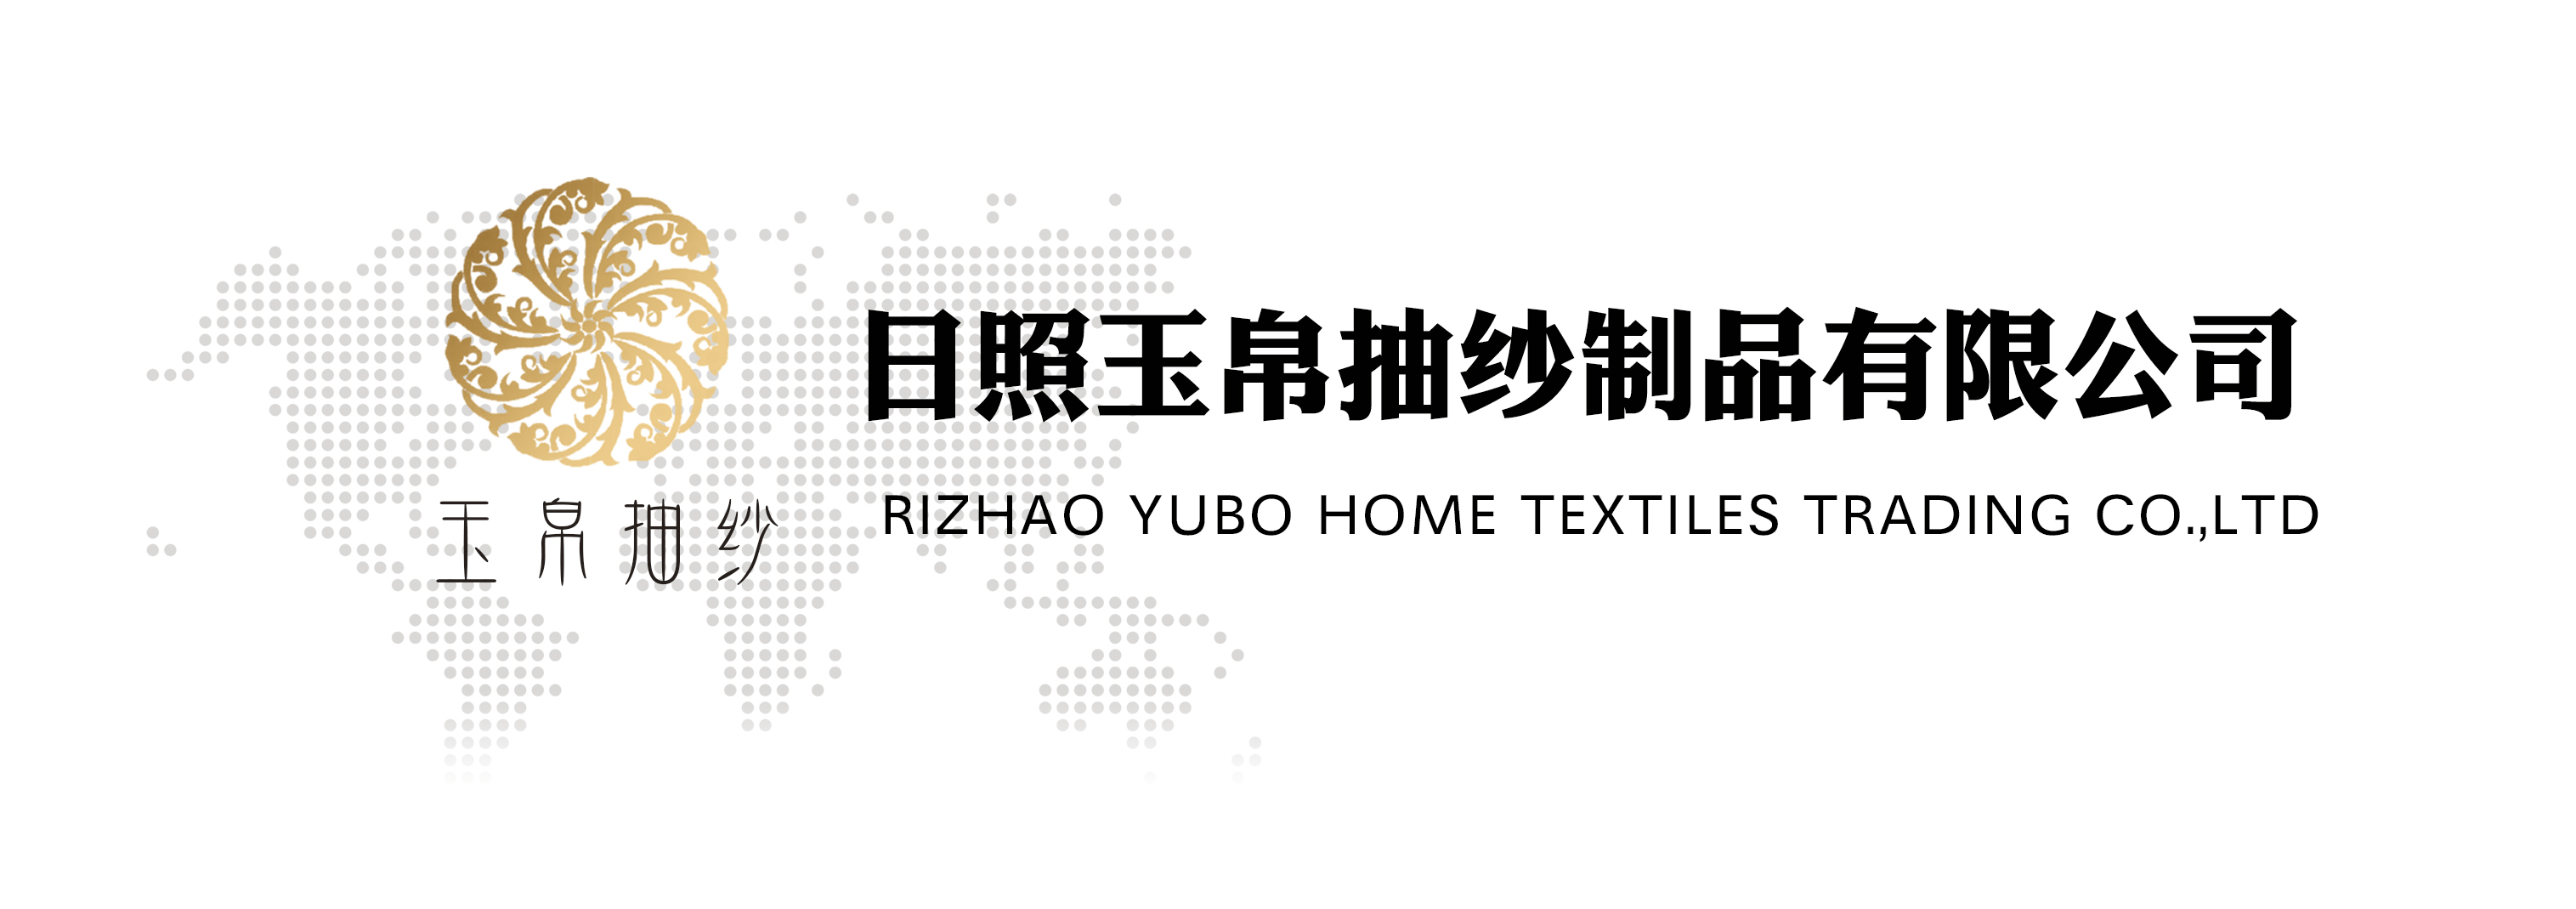 RIZHAO YUBO HOME TEXTILES TRADING CO.,LTD